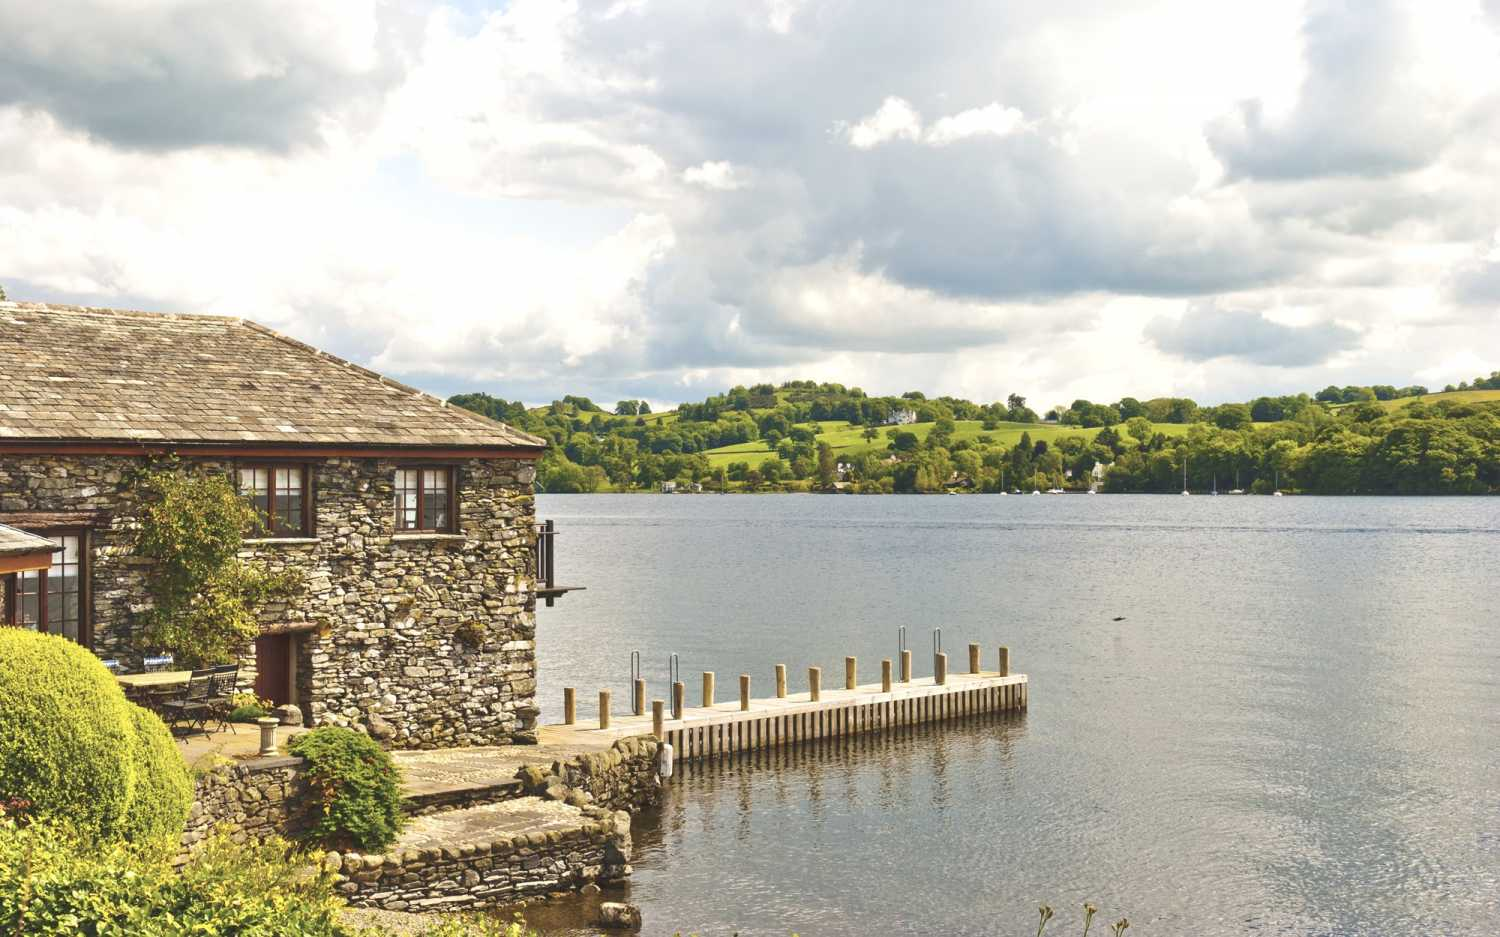 Picture of Gunnislake - Last Minute Cottages in Gunnislake